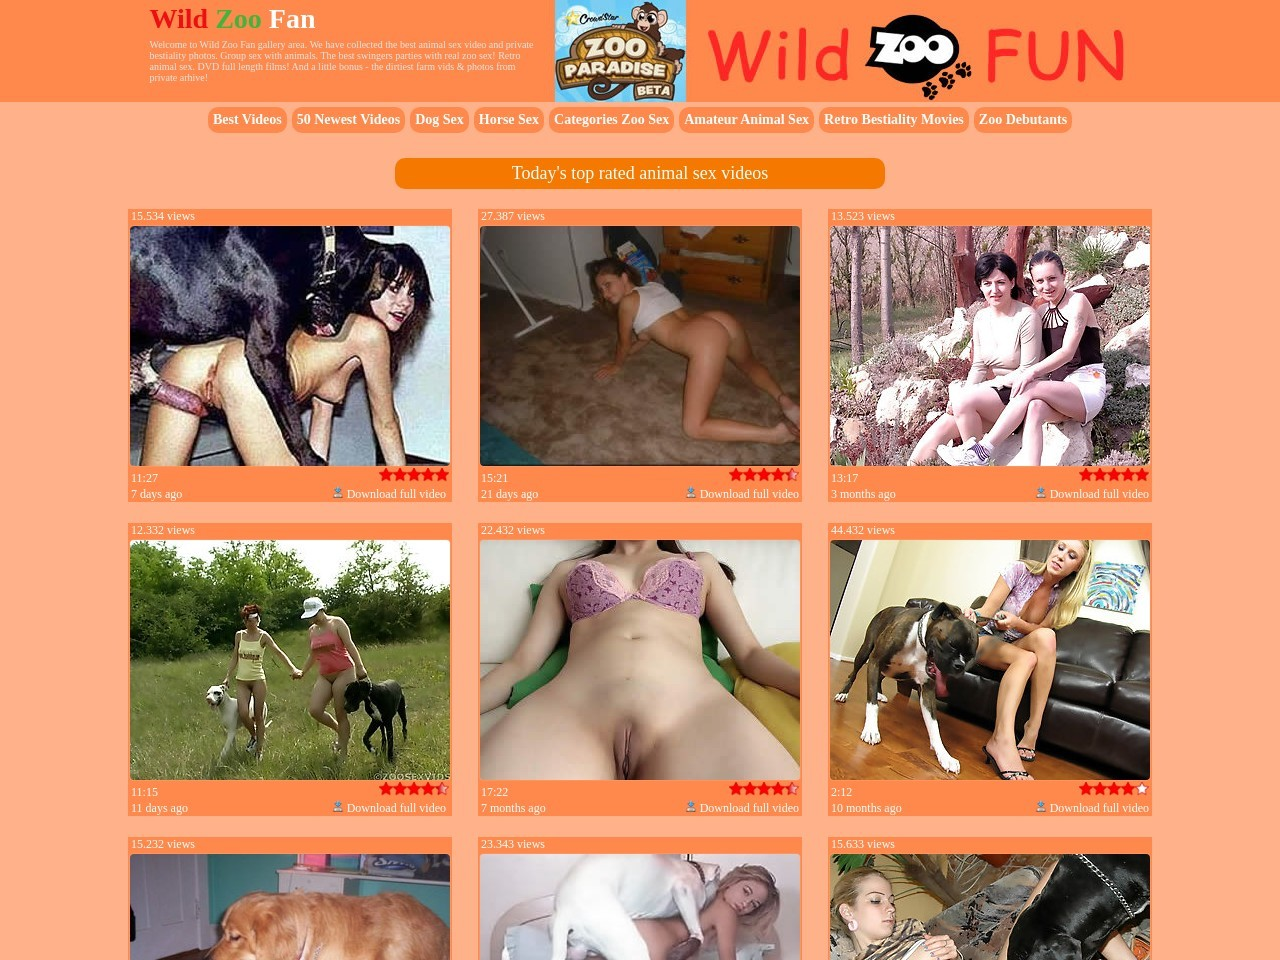 .:: Wild Zoo Fan ::. We have collected the best animal sex video and private bestiality photos. Group sex with animals. The best swingers parties with real zoo sex! Retro animal sex. DVD full length films! And a little bonus - the dirtiest farm vids